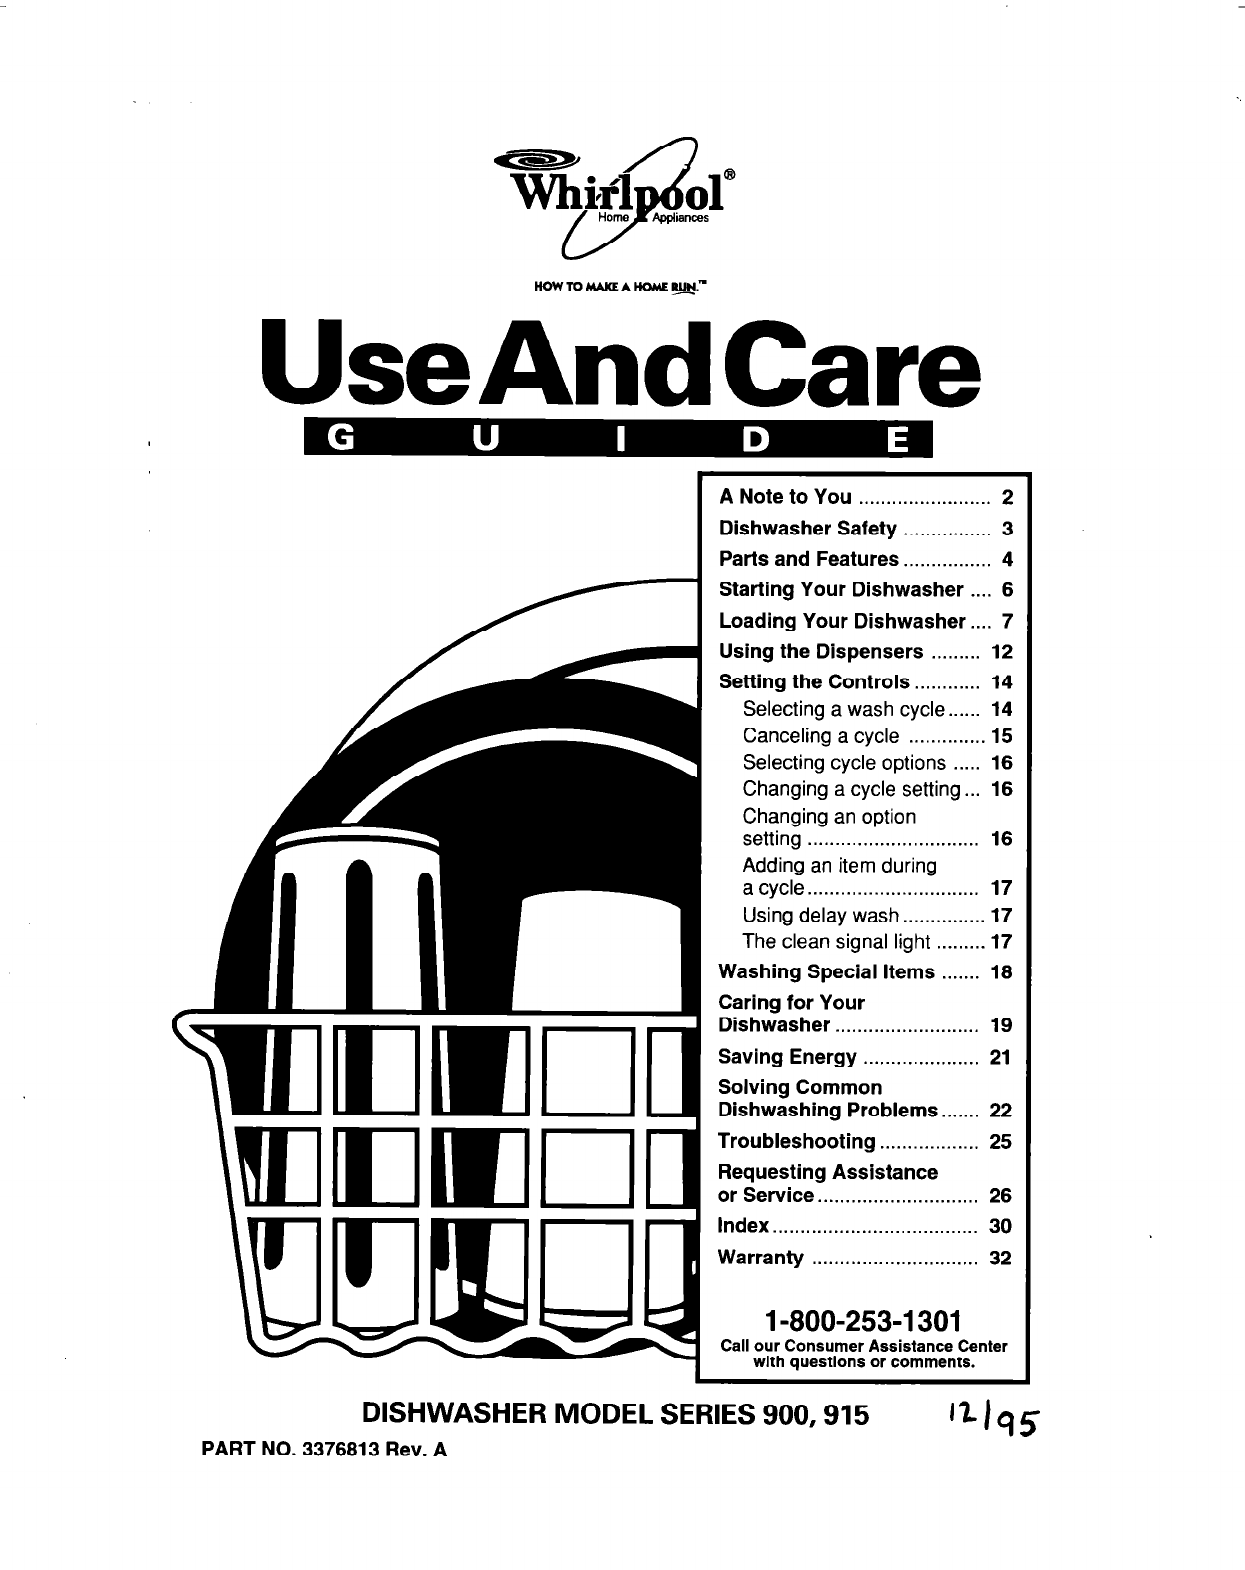 Whirlpool Dishwasher 915 User Guide